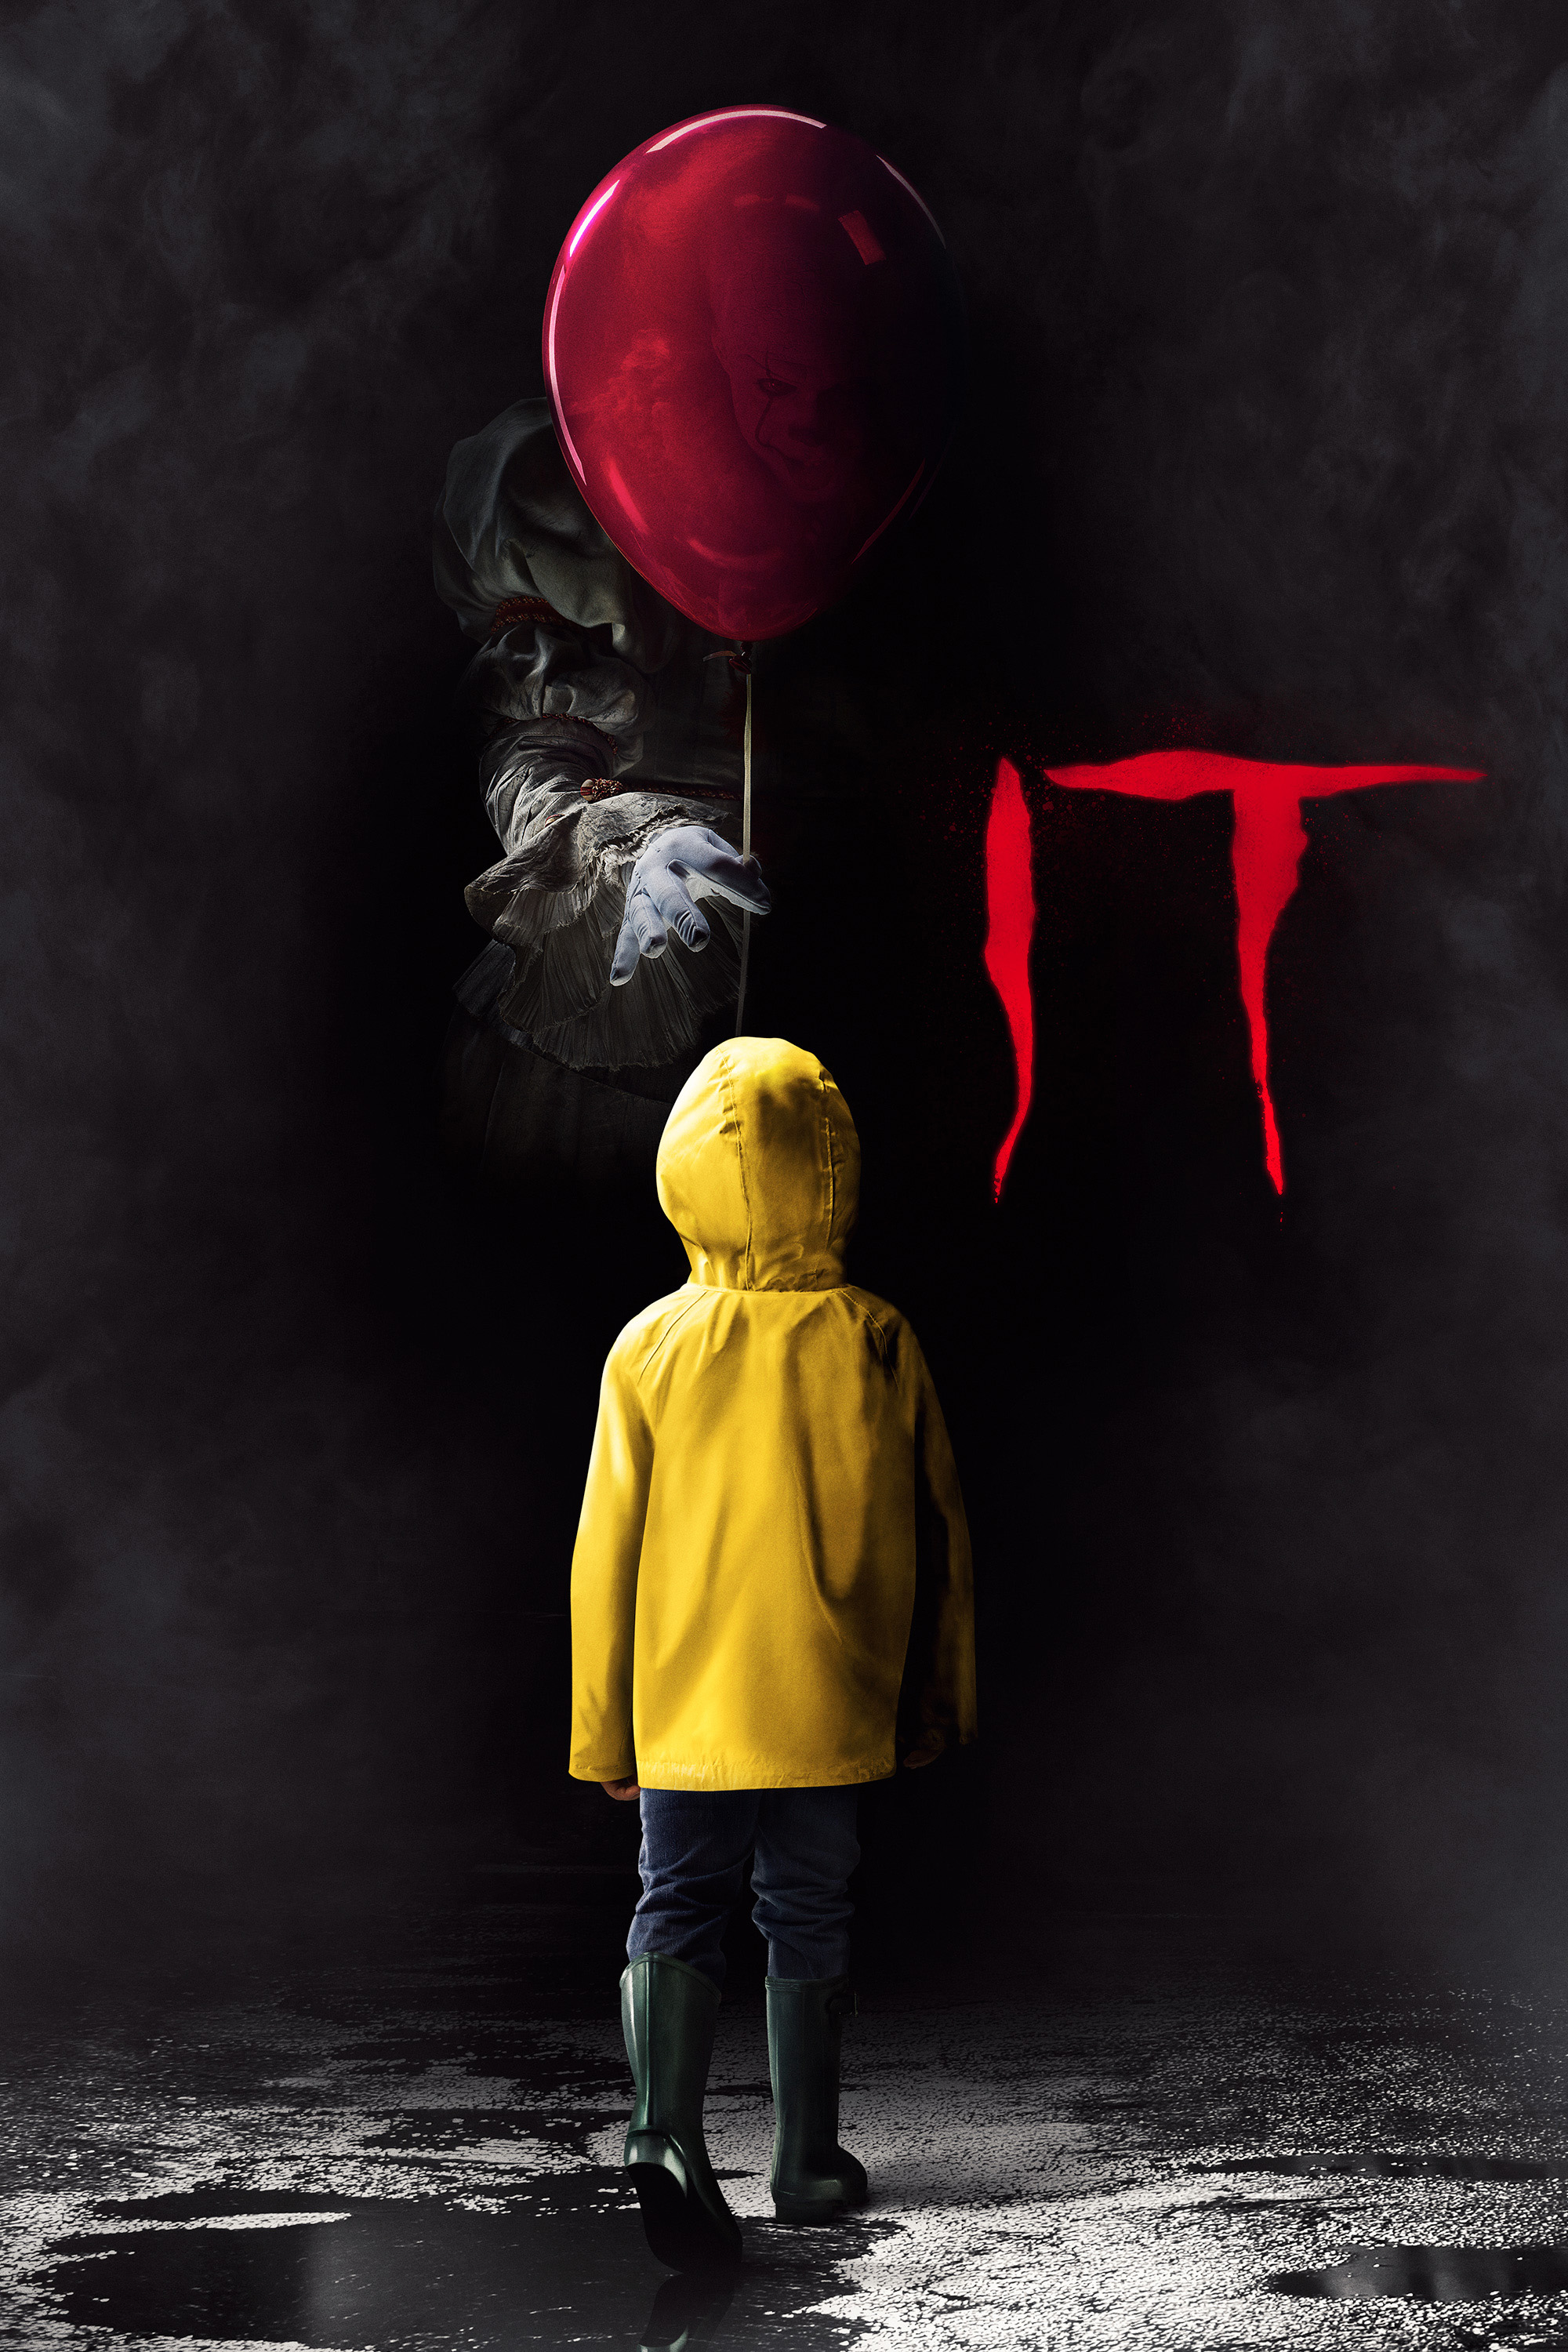 Image result for it movie cover""